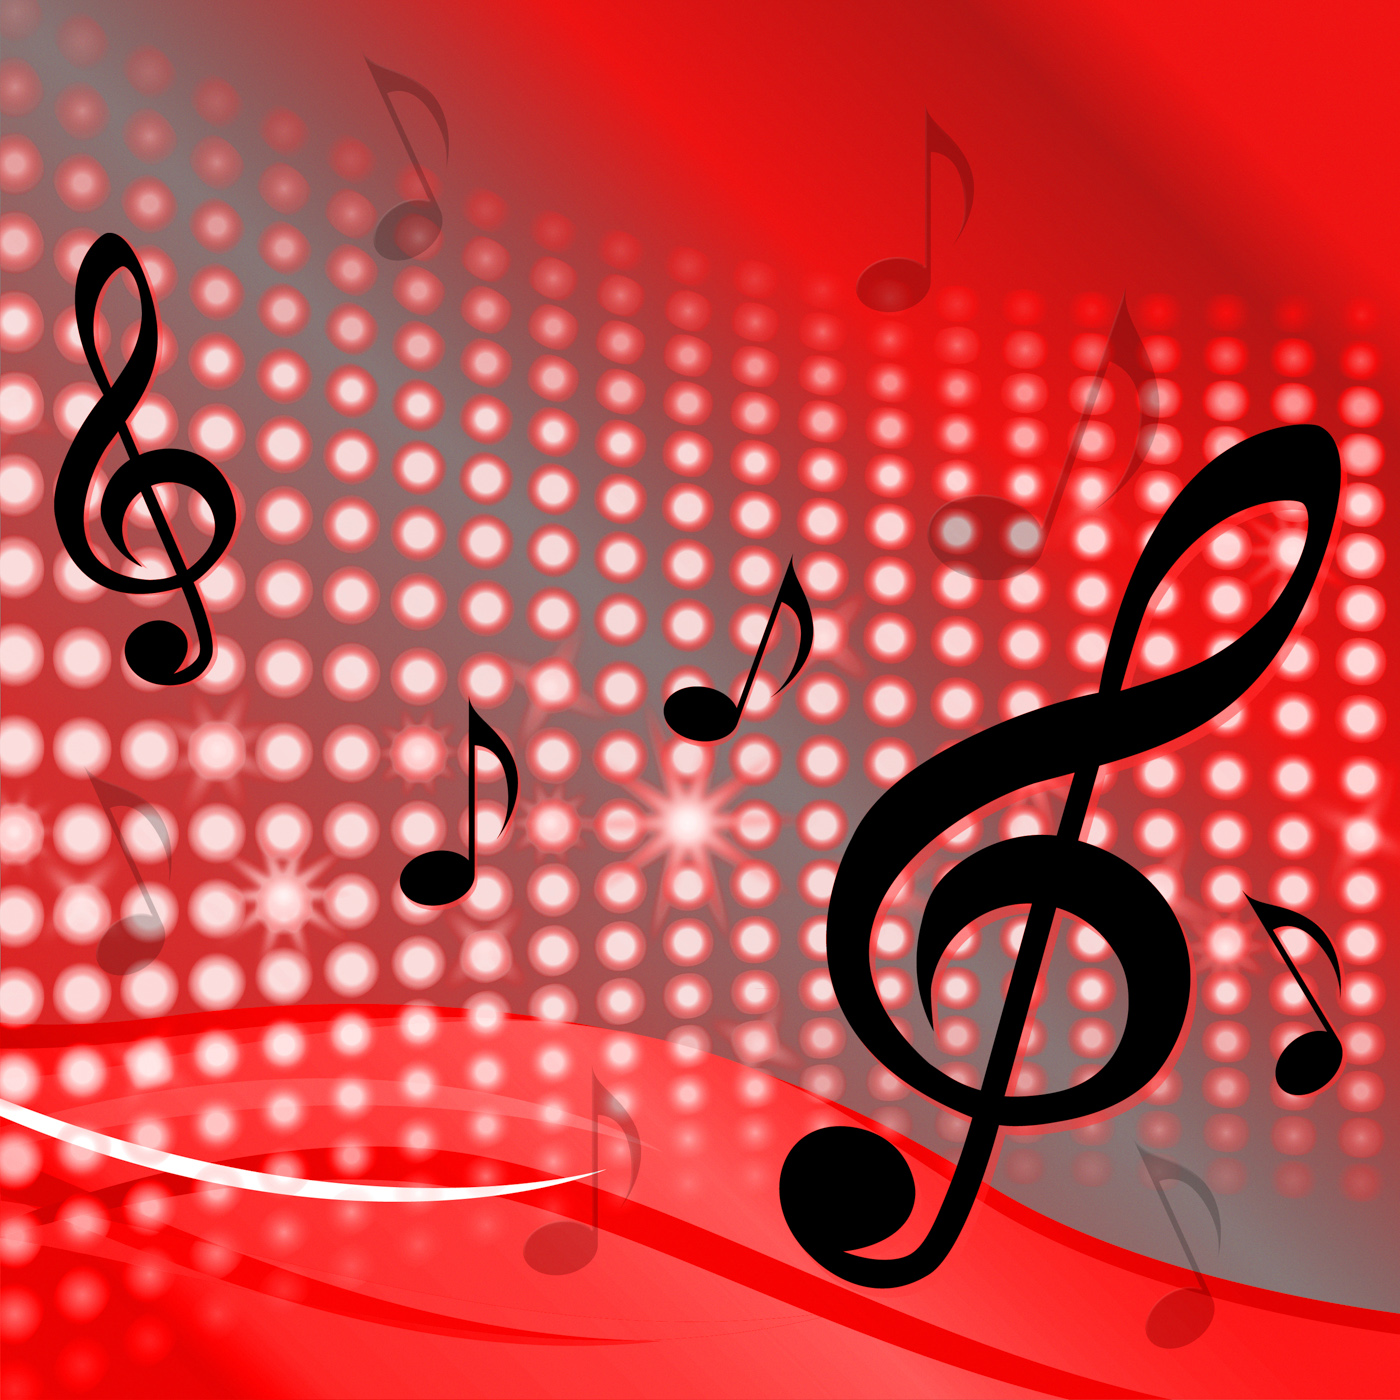 Free photo: Treble Clef Background Shows Music Notes And